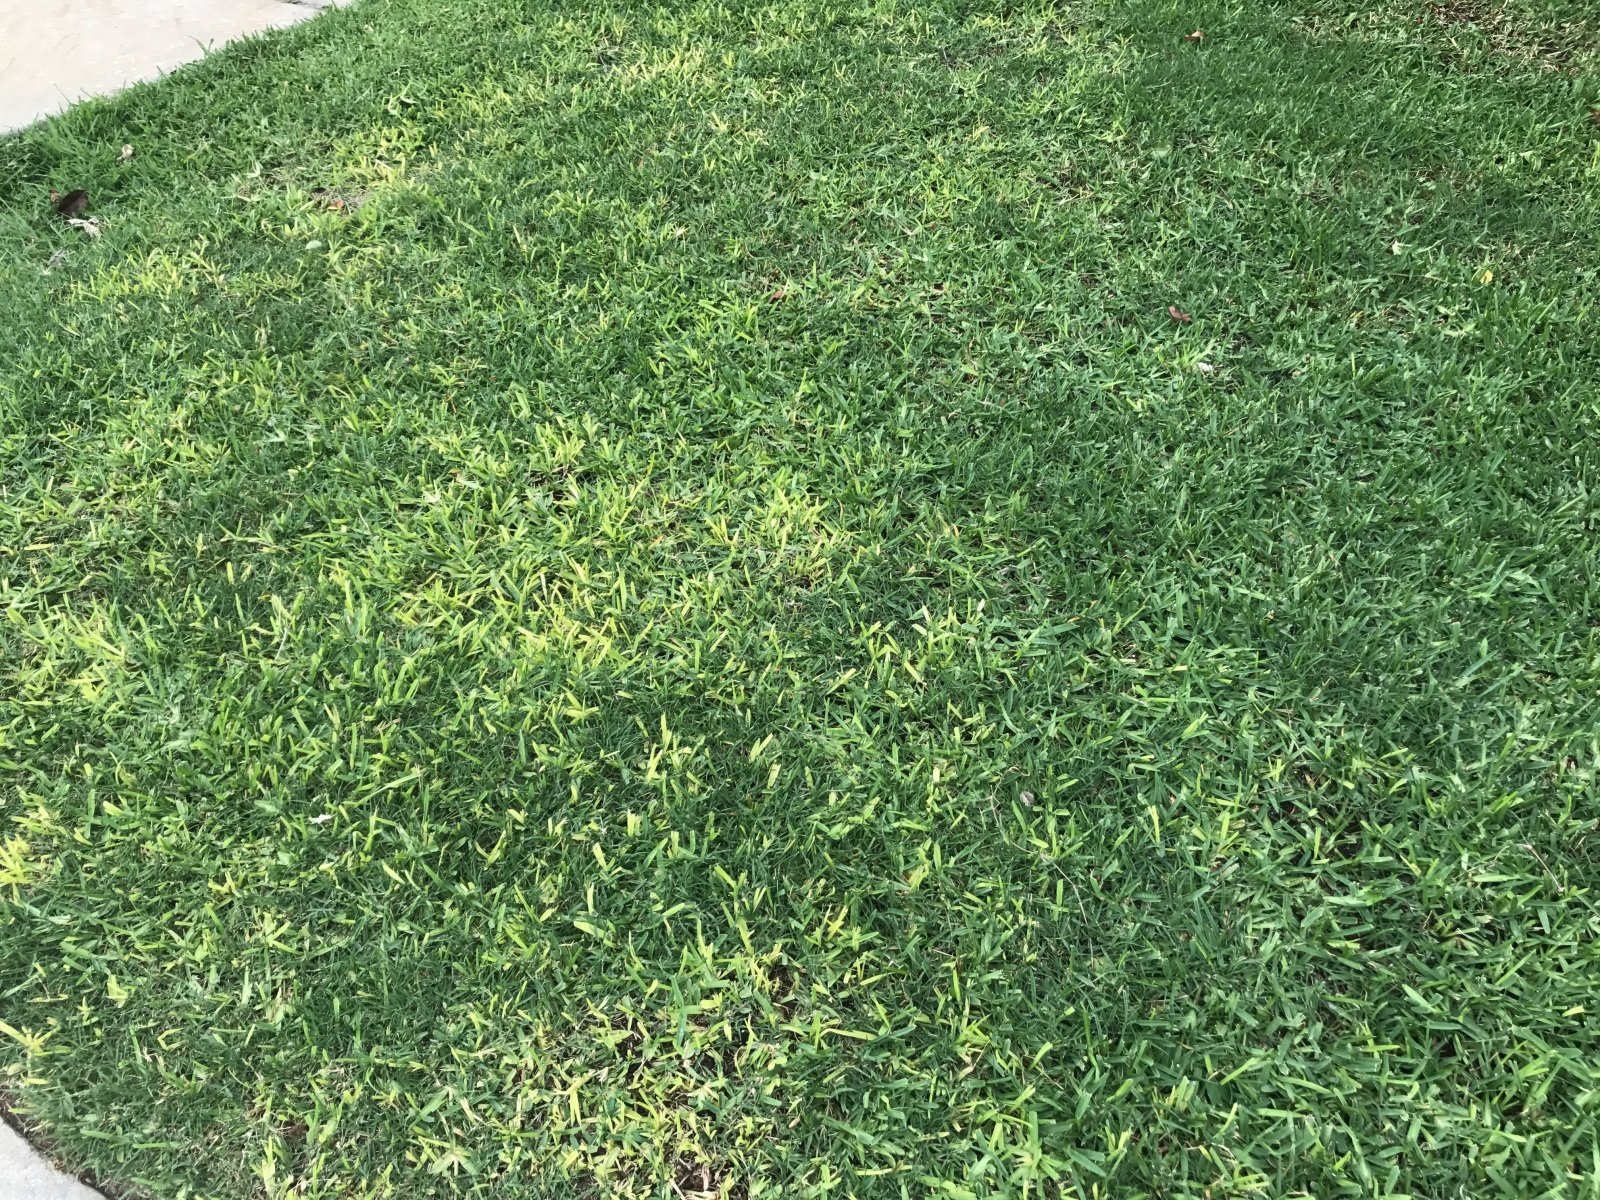 Weed that looks like st augustine grass